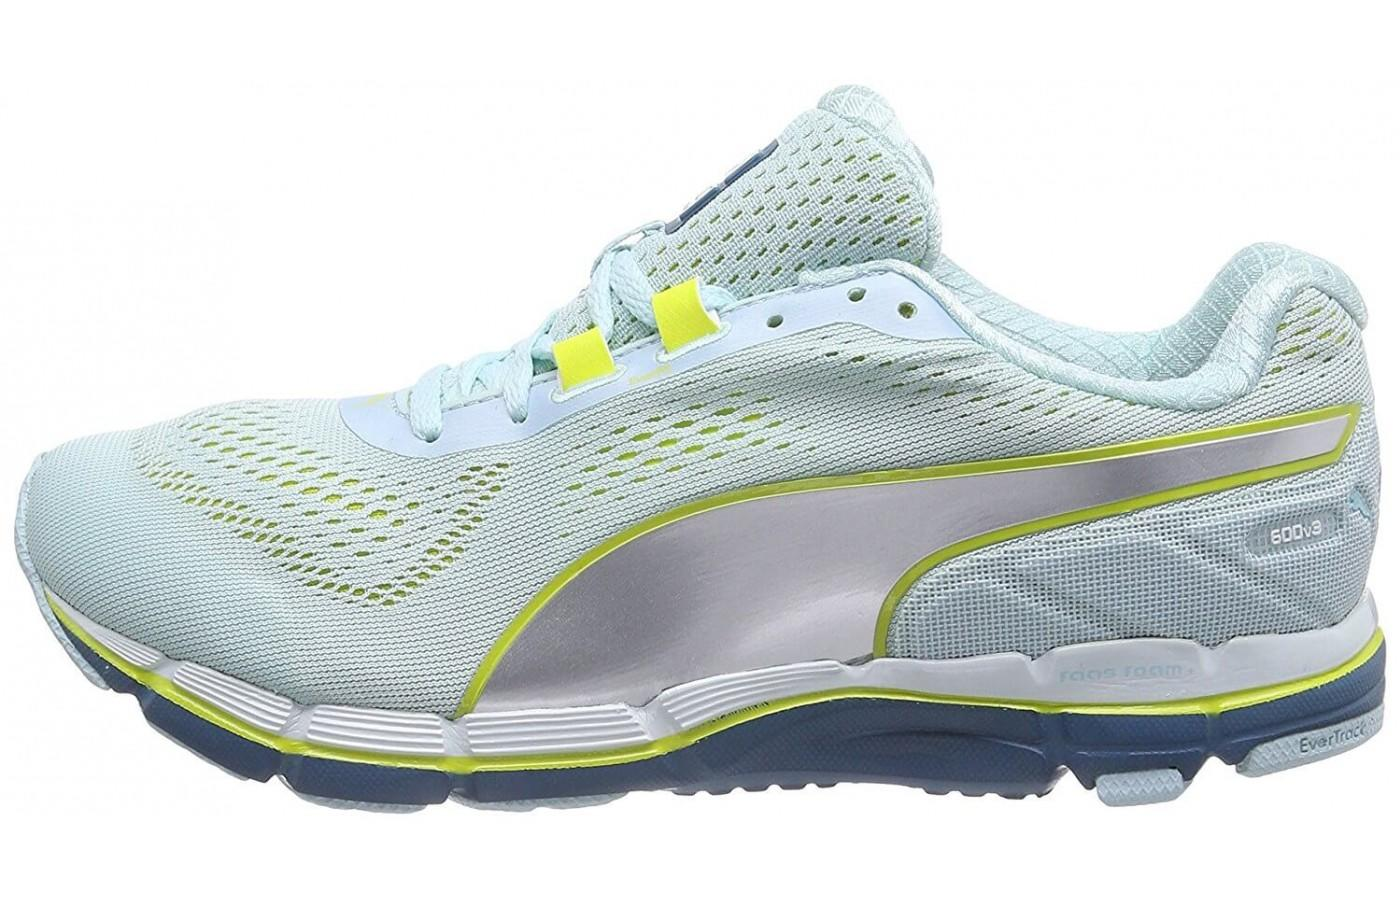 The Puma Faas 600 v3 features a dual-density foam midsole construction